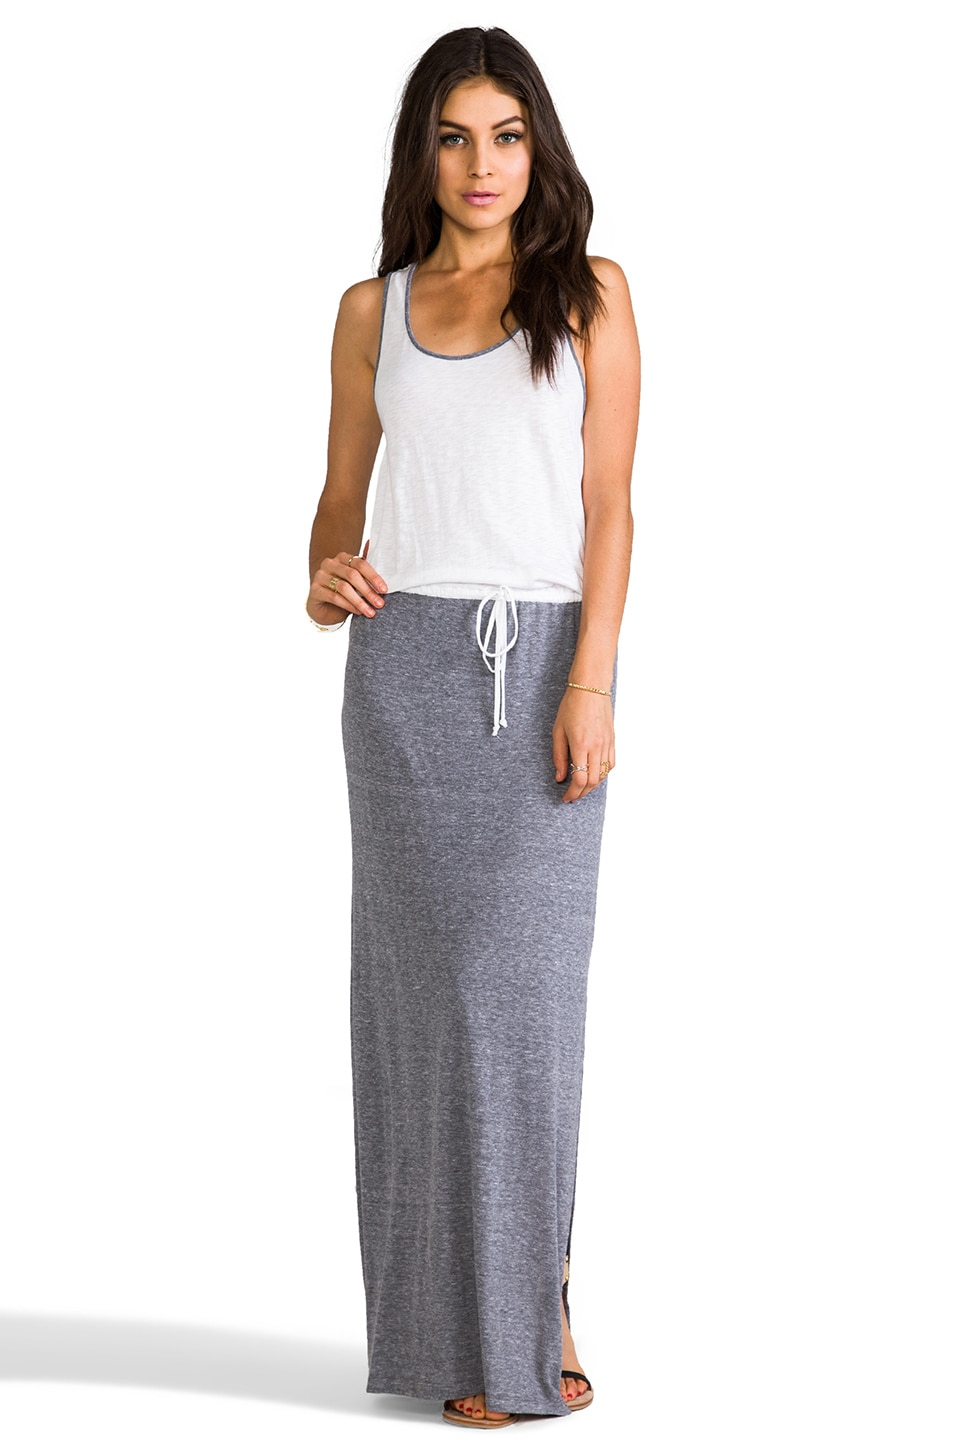 C&C California Racer Back Maxi Dress in White